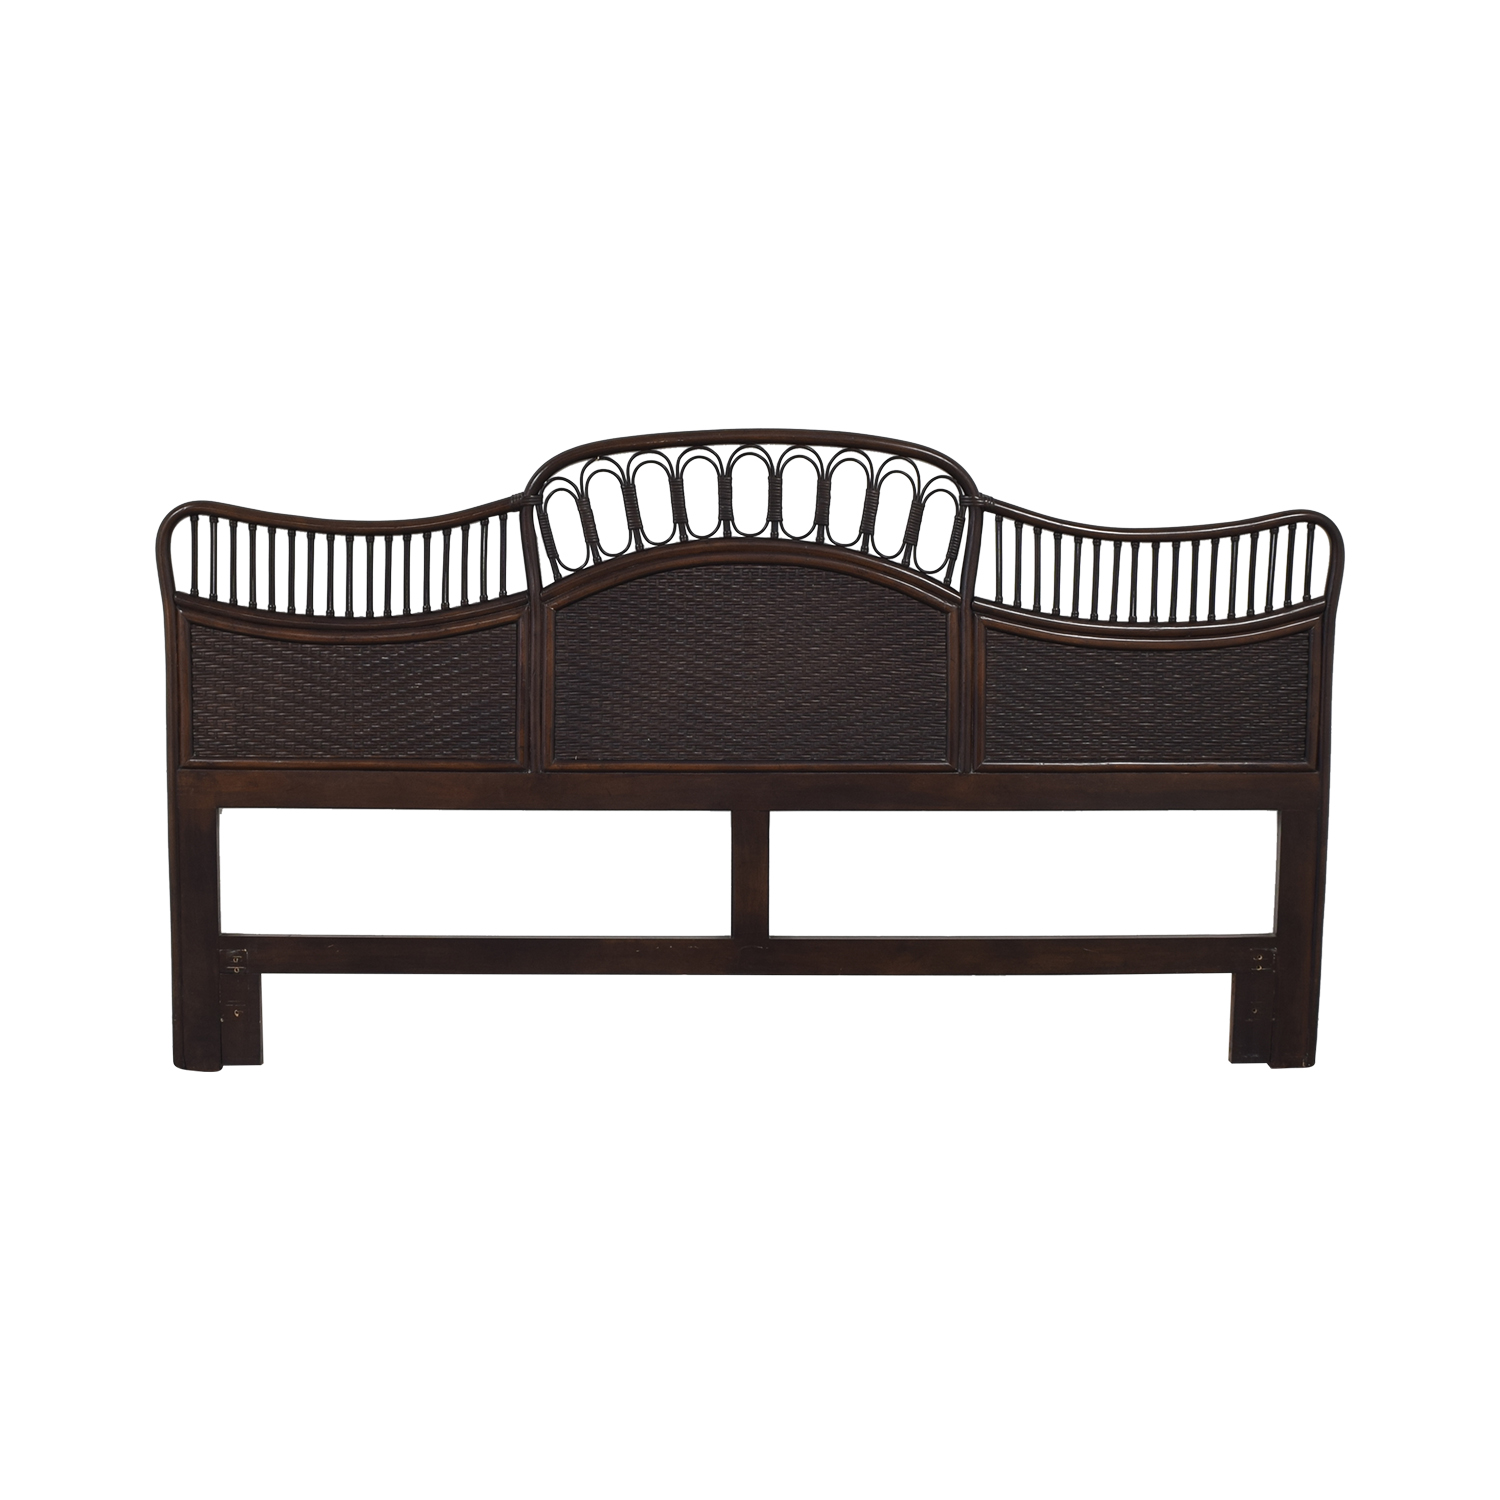 Ficks Reed Ficks Reed Rattan King Headboard on sale